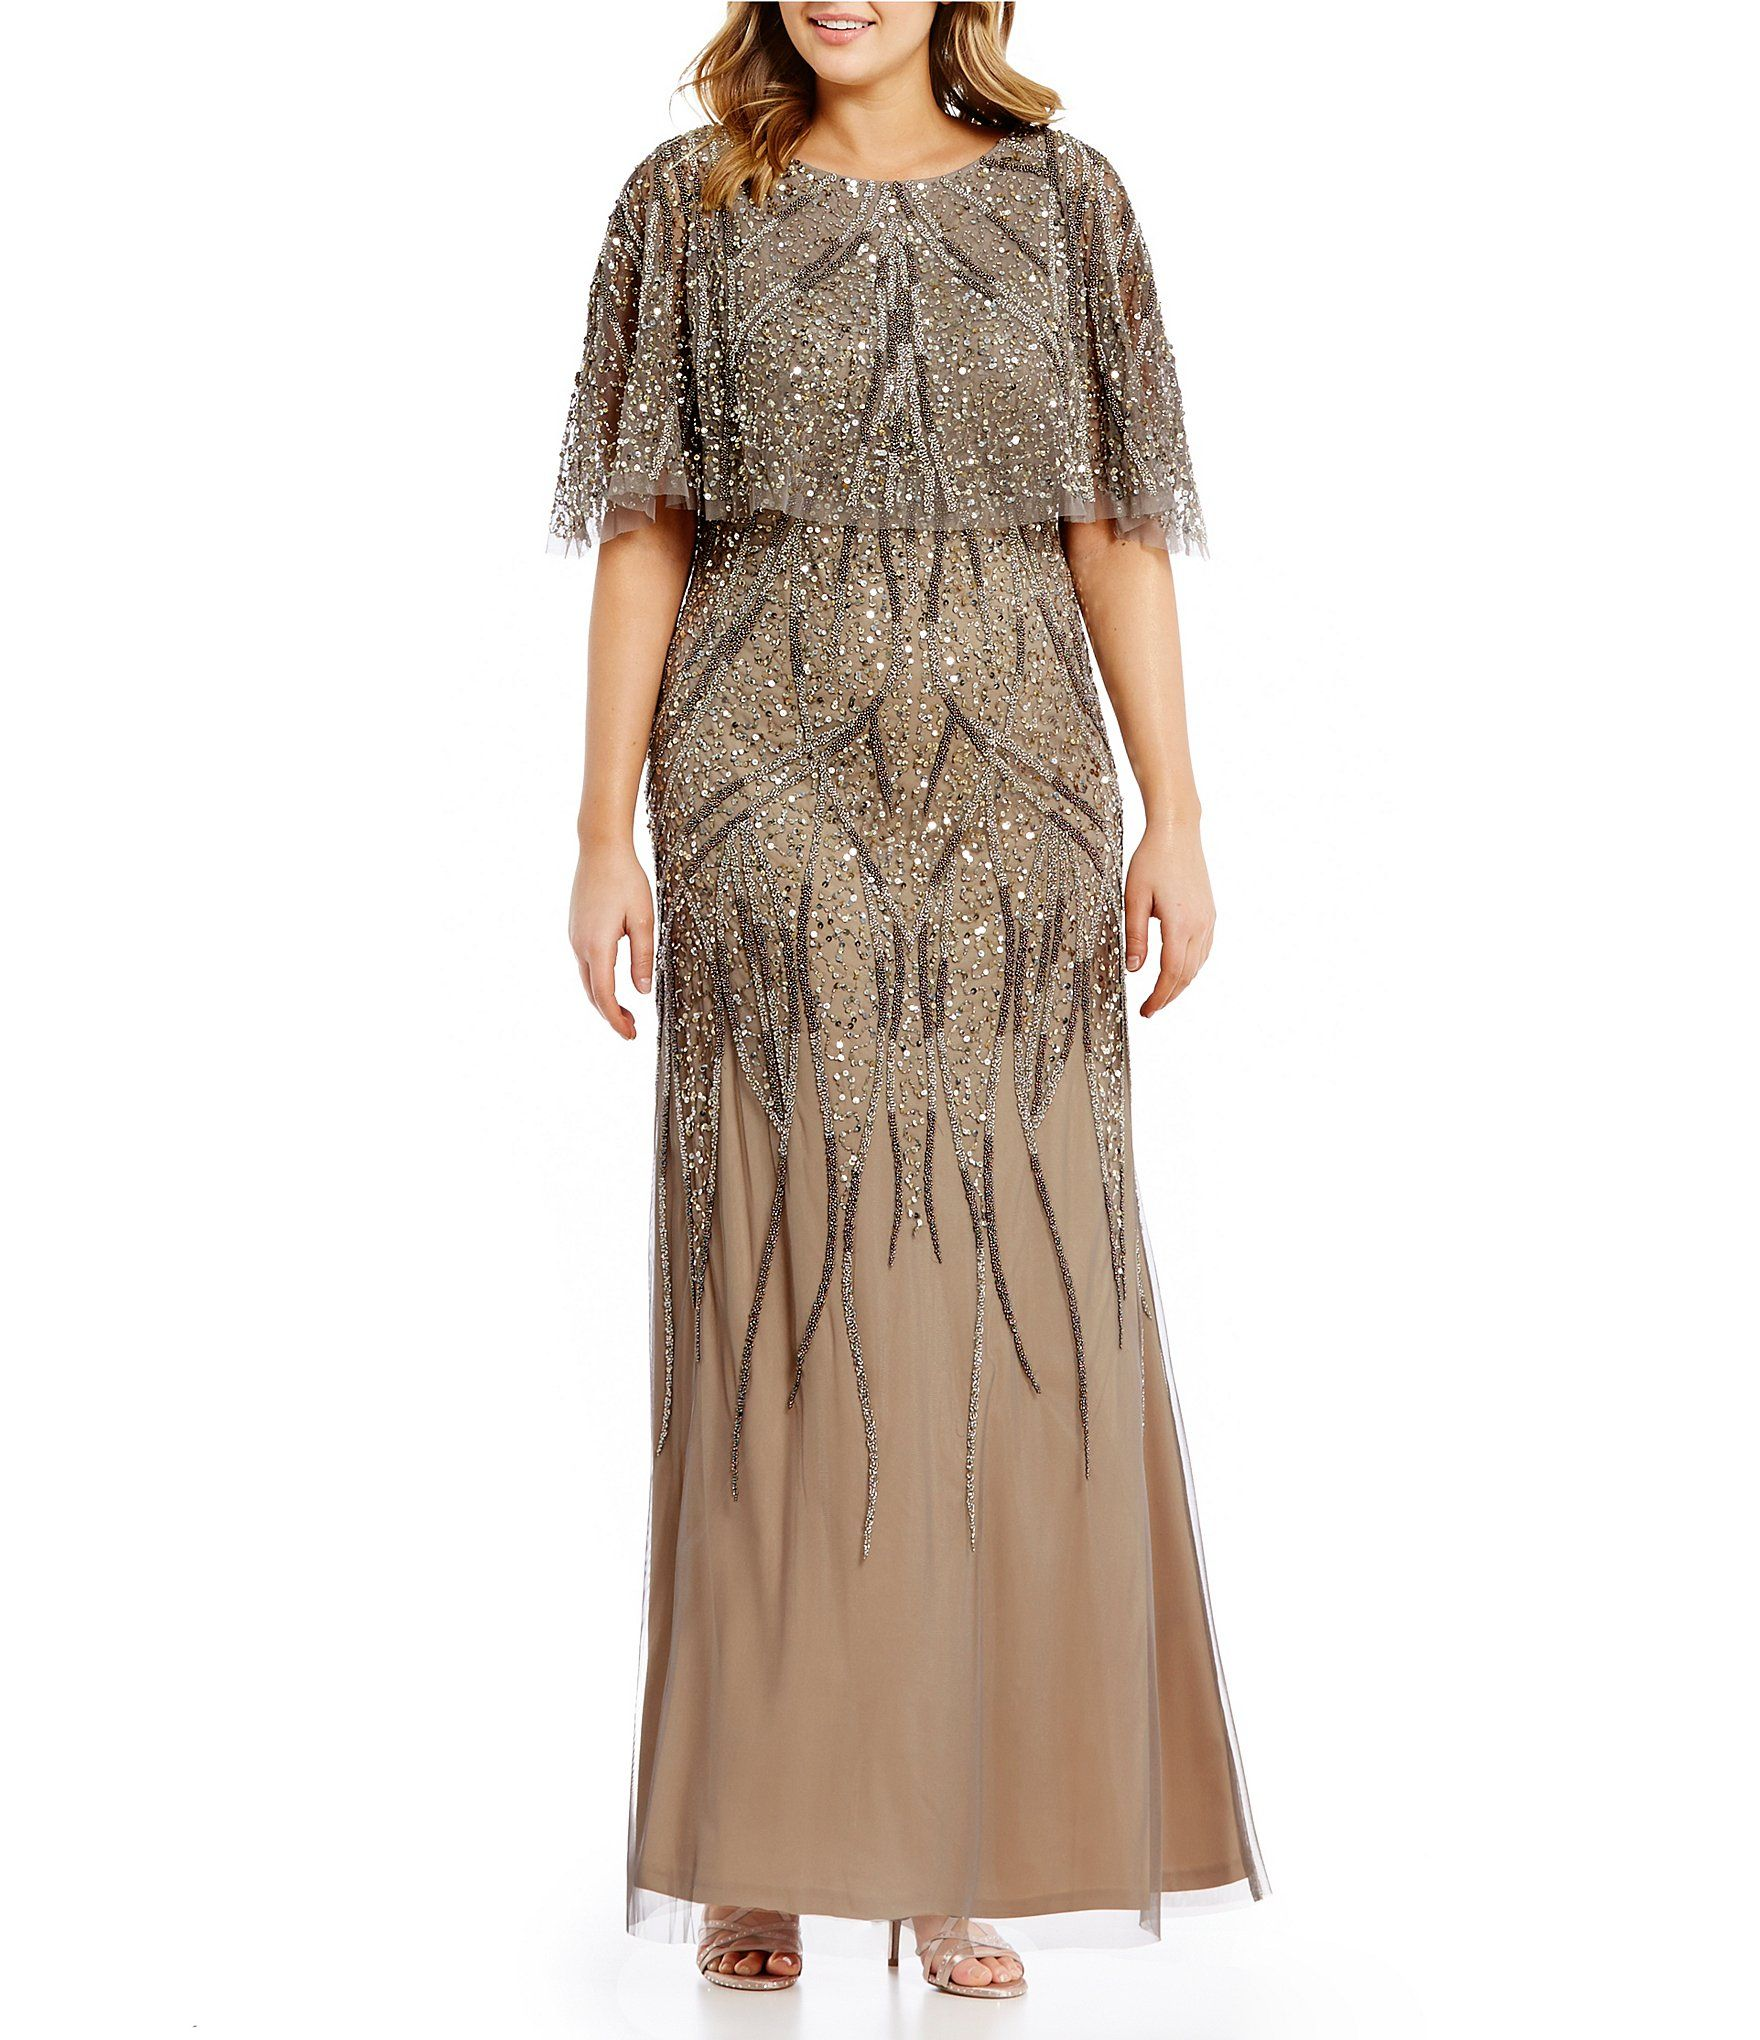 ff8e902926 Shop for Adrianna Papell Plus Beaded Capelet Gown at Dillards.com. Visit  Dillards.com to find clothing